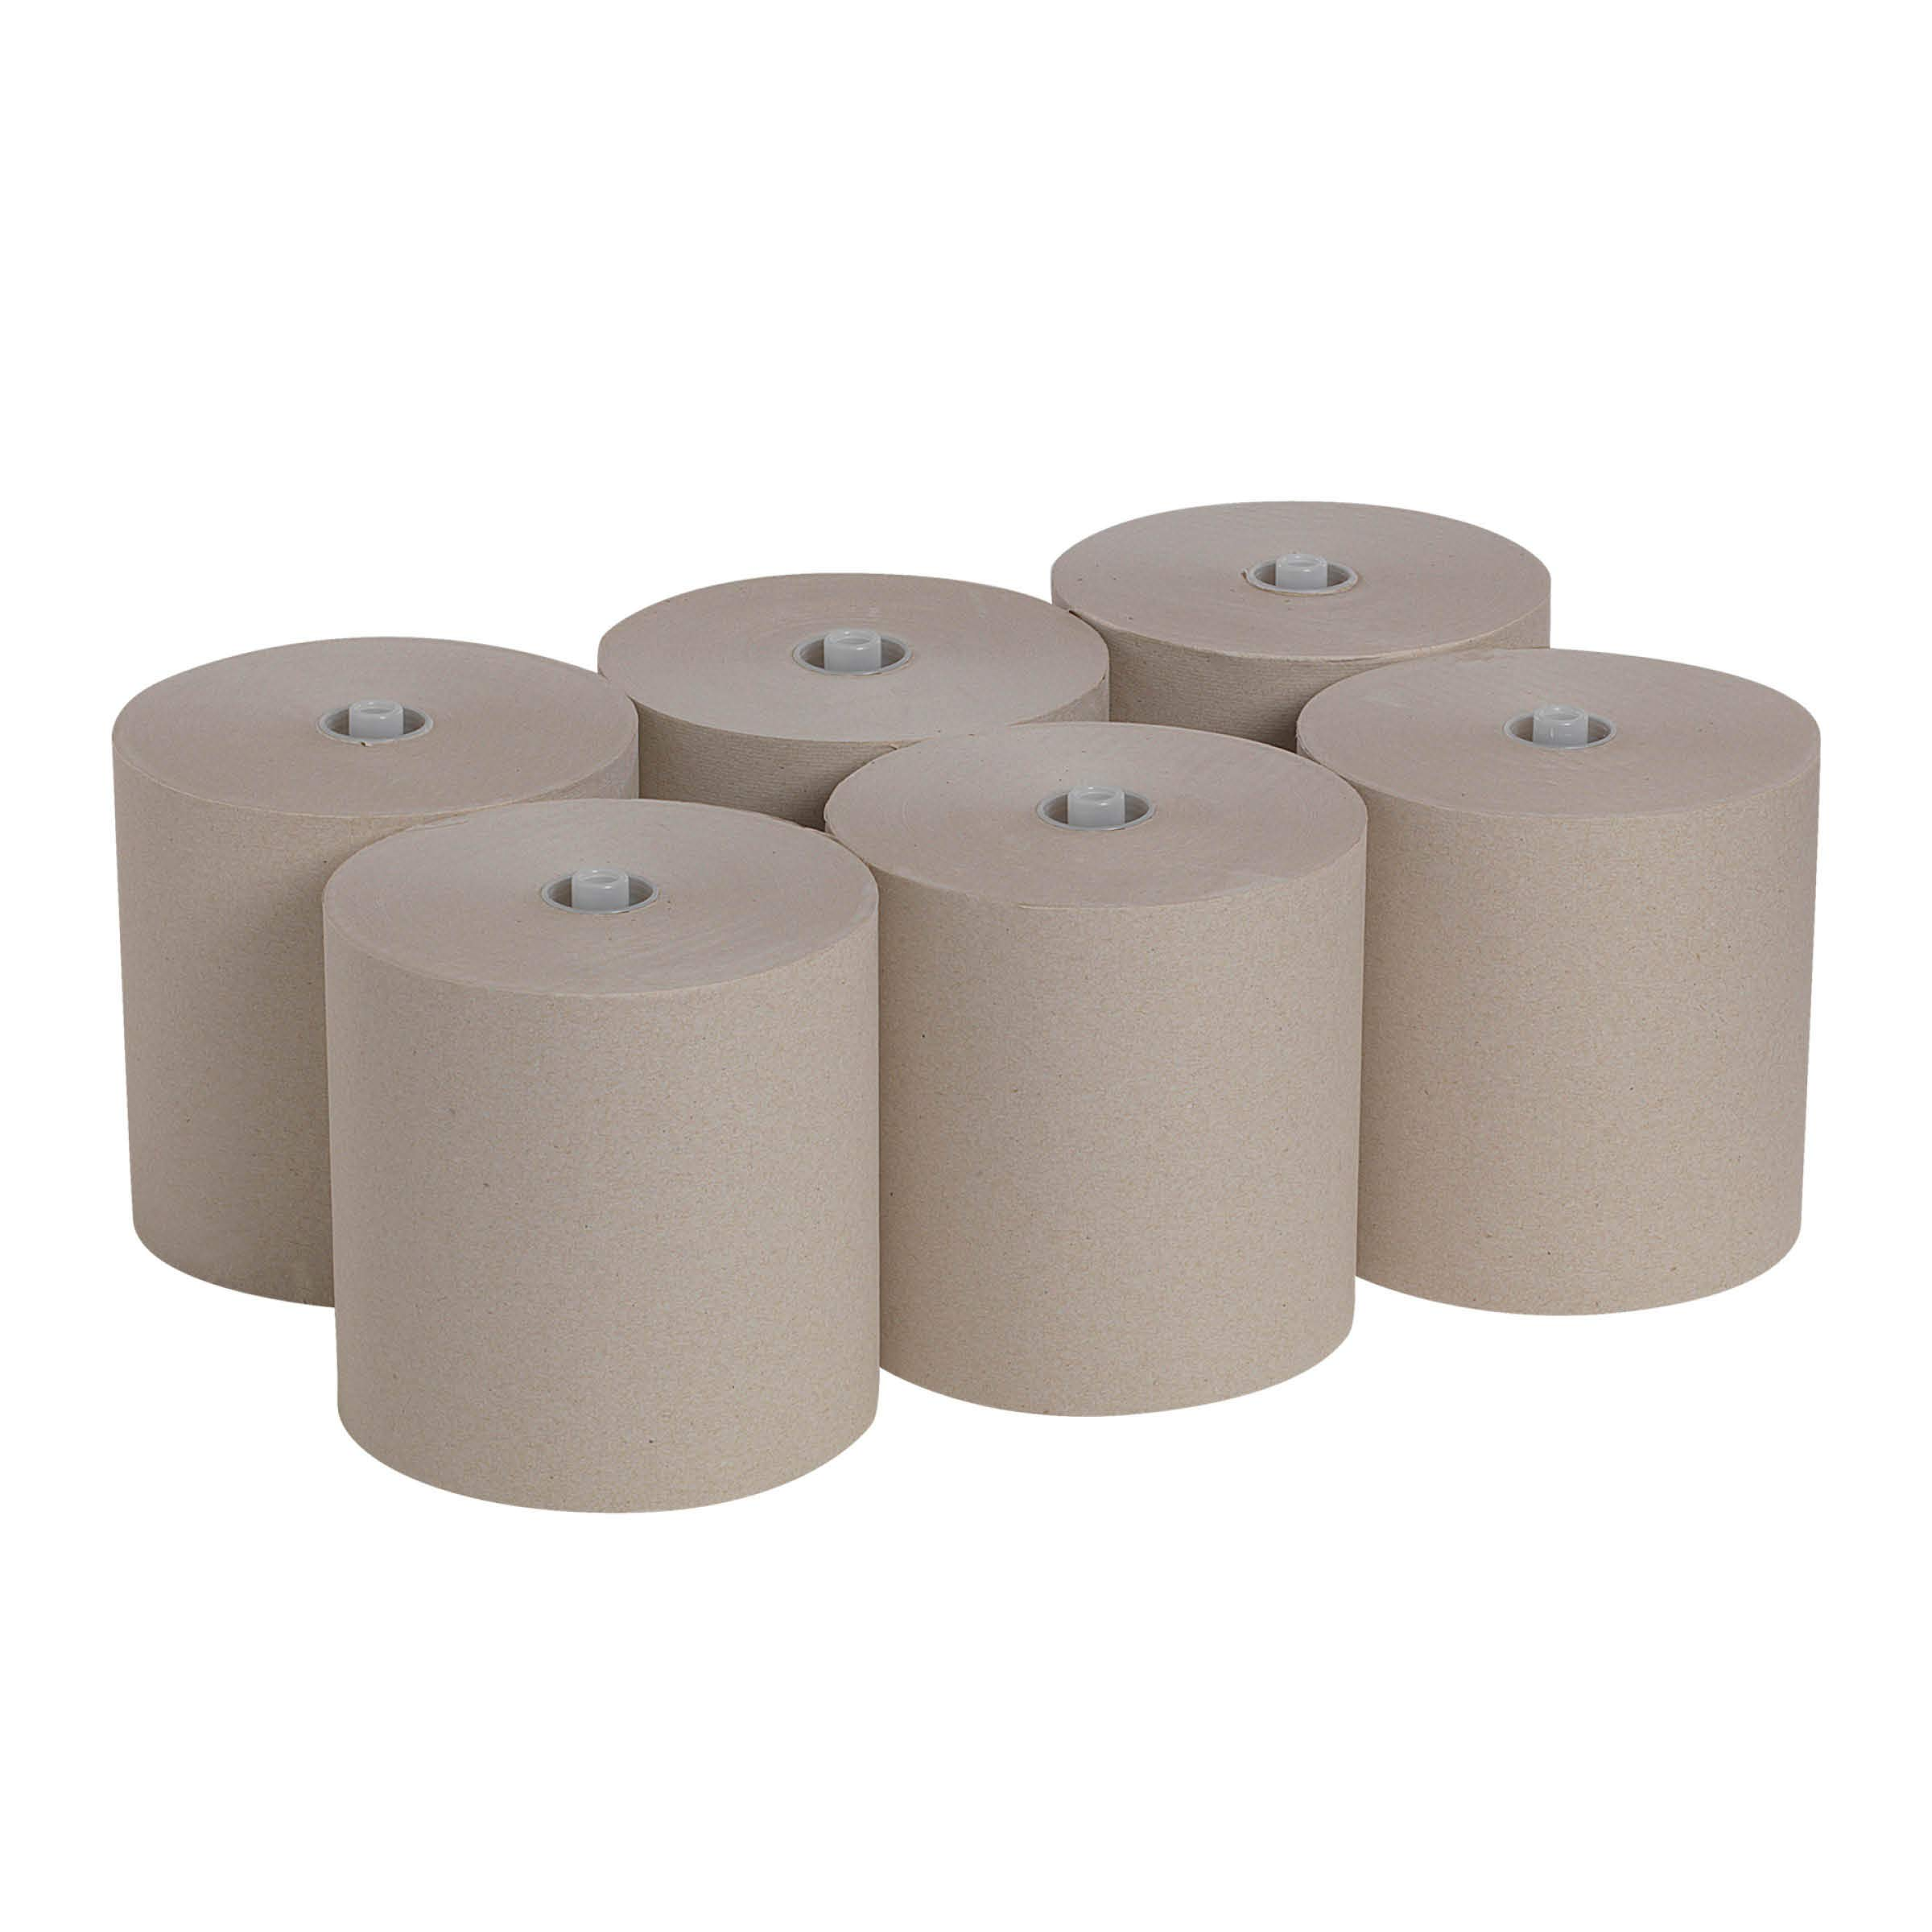 """Pacific Blue Ultra 8"""" High-Capacity Recycled Paper Towel Roll by GP PRO (Georgia-Pacific), Brown, 26495, 1150 Feet Per Roll, 6 Rolls Per Case"""